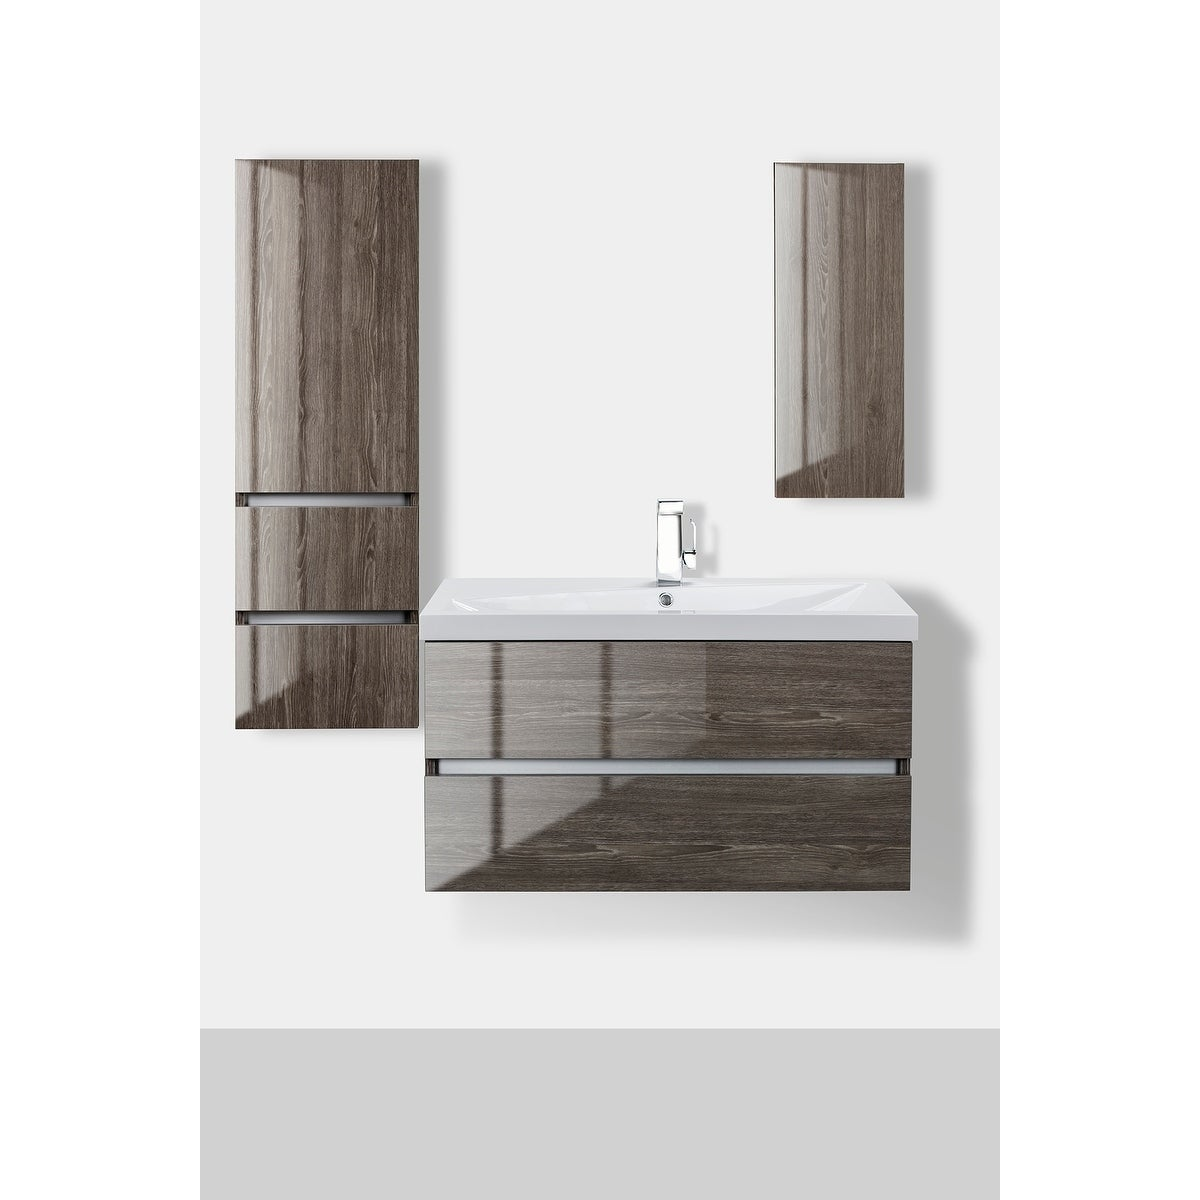 Wall Mount Bath Vanity.Sangallo Gloss Collection 36 Wall Mount Bathroom Vanity 2 Drawer With Top Fossil Oak